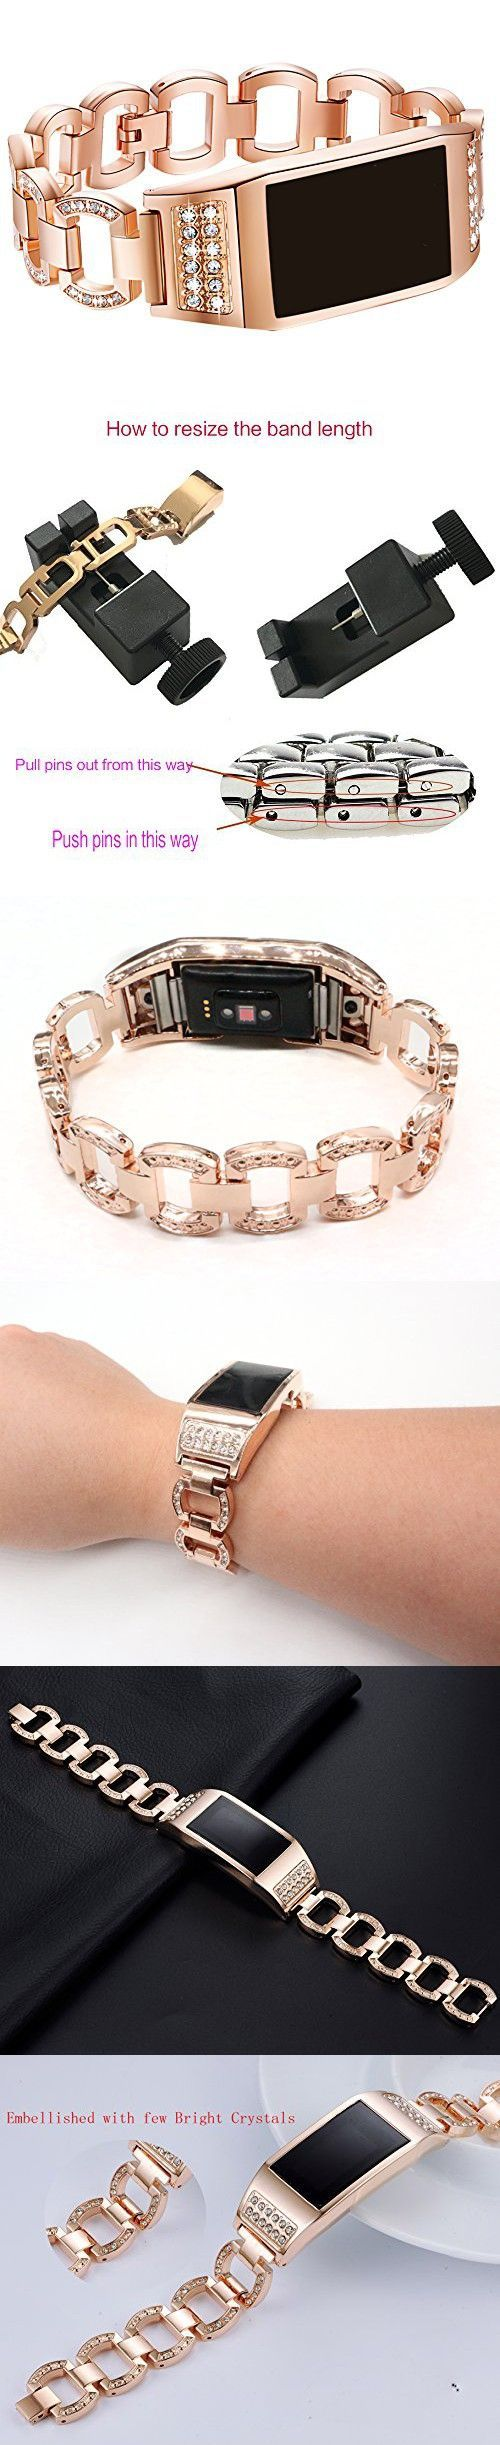 Watch accessories wristband metal adjustable replacement bands for